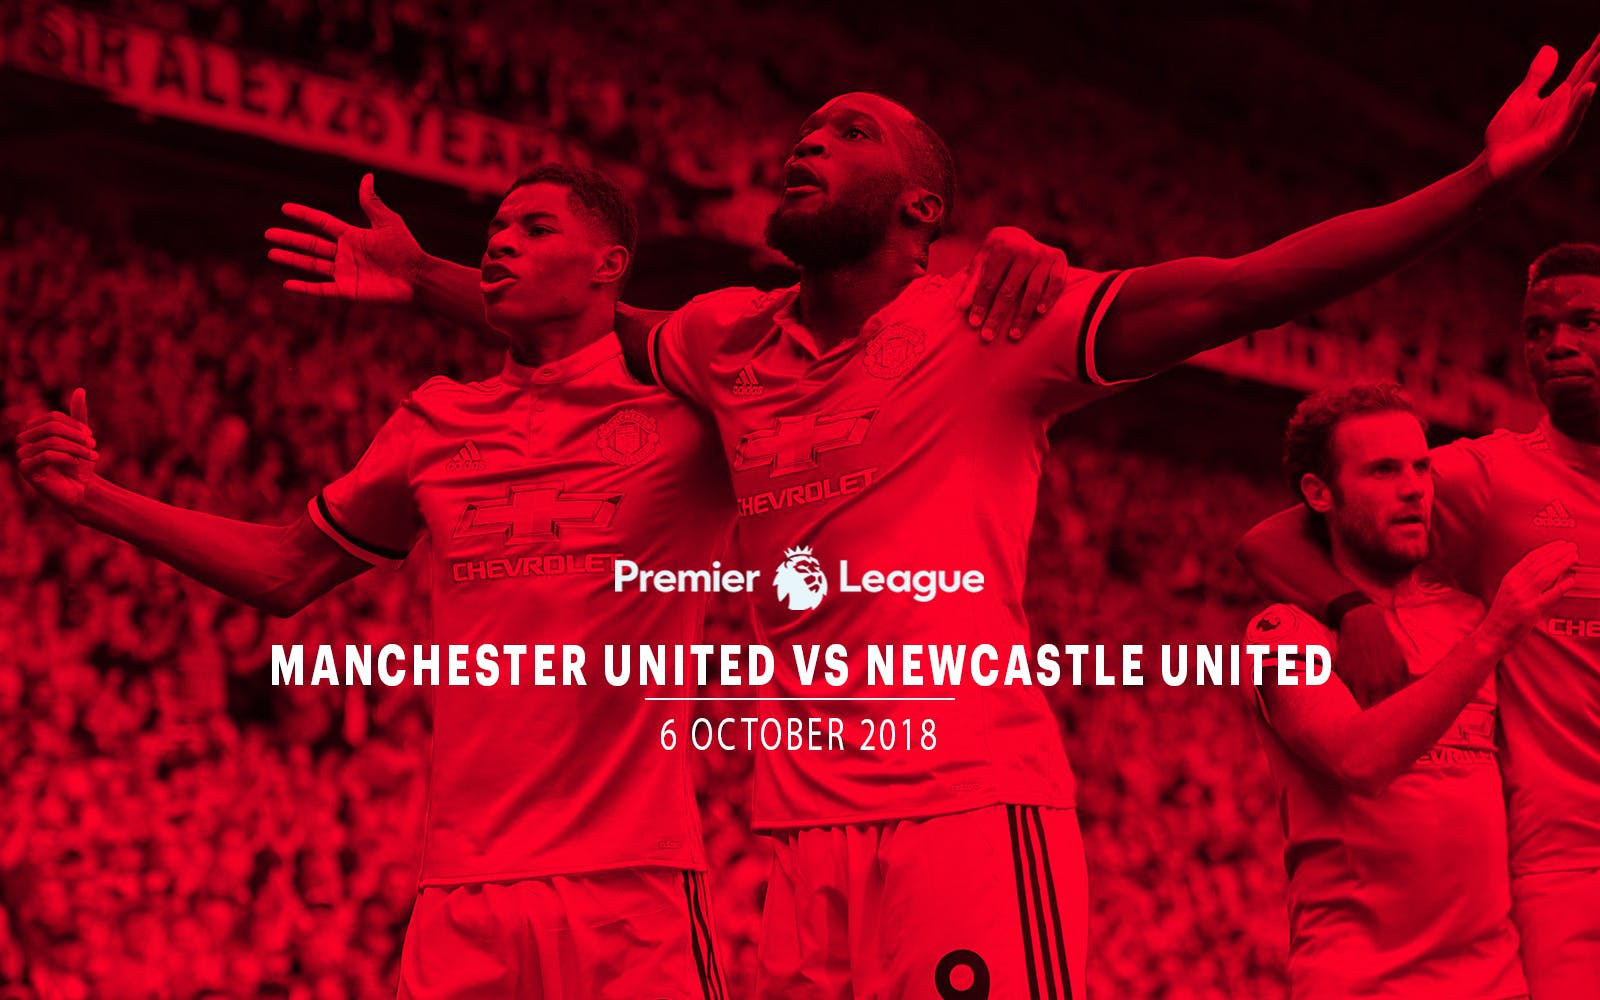 Manchester United vs Newcastle United - Oct 6th'18